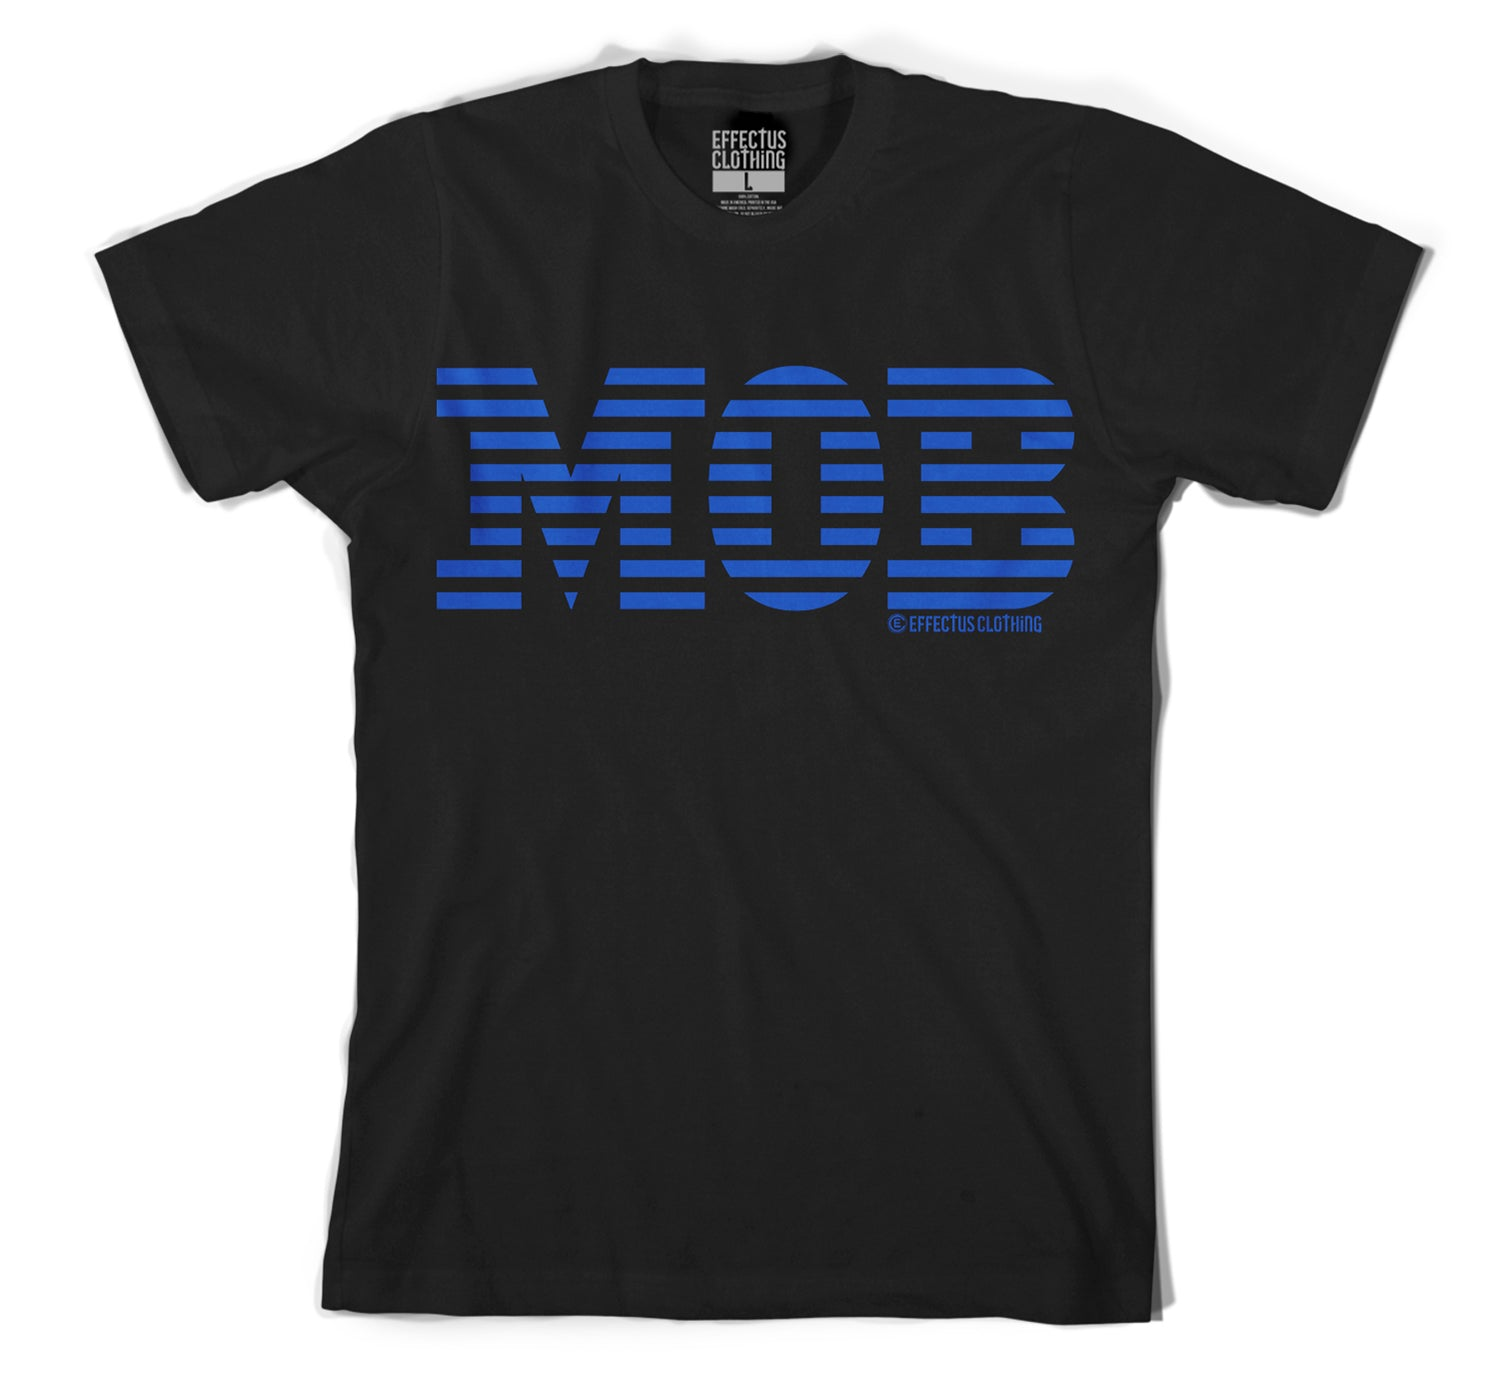 Jordan 12 Game Royal MOB shirt for outfit